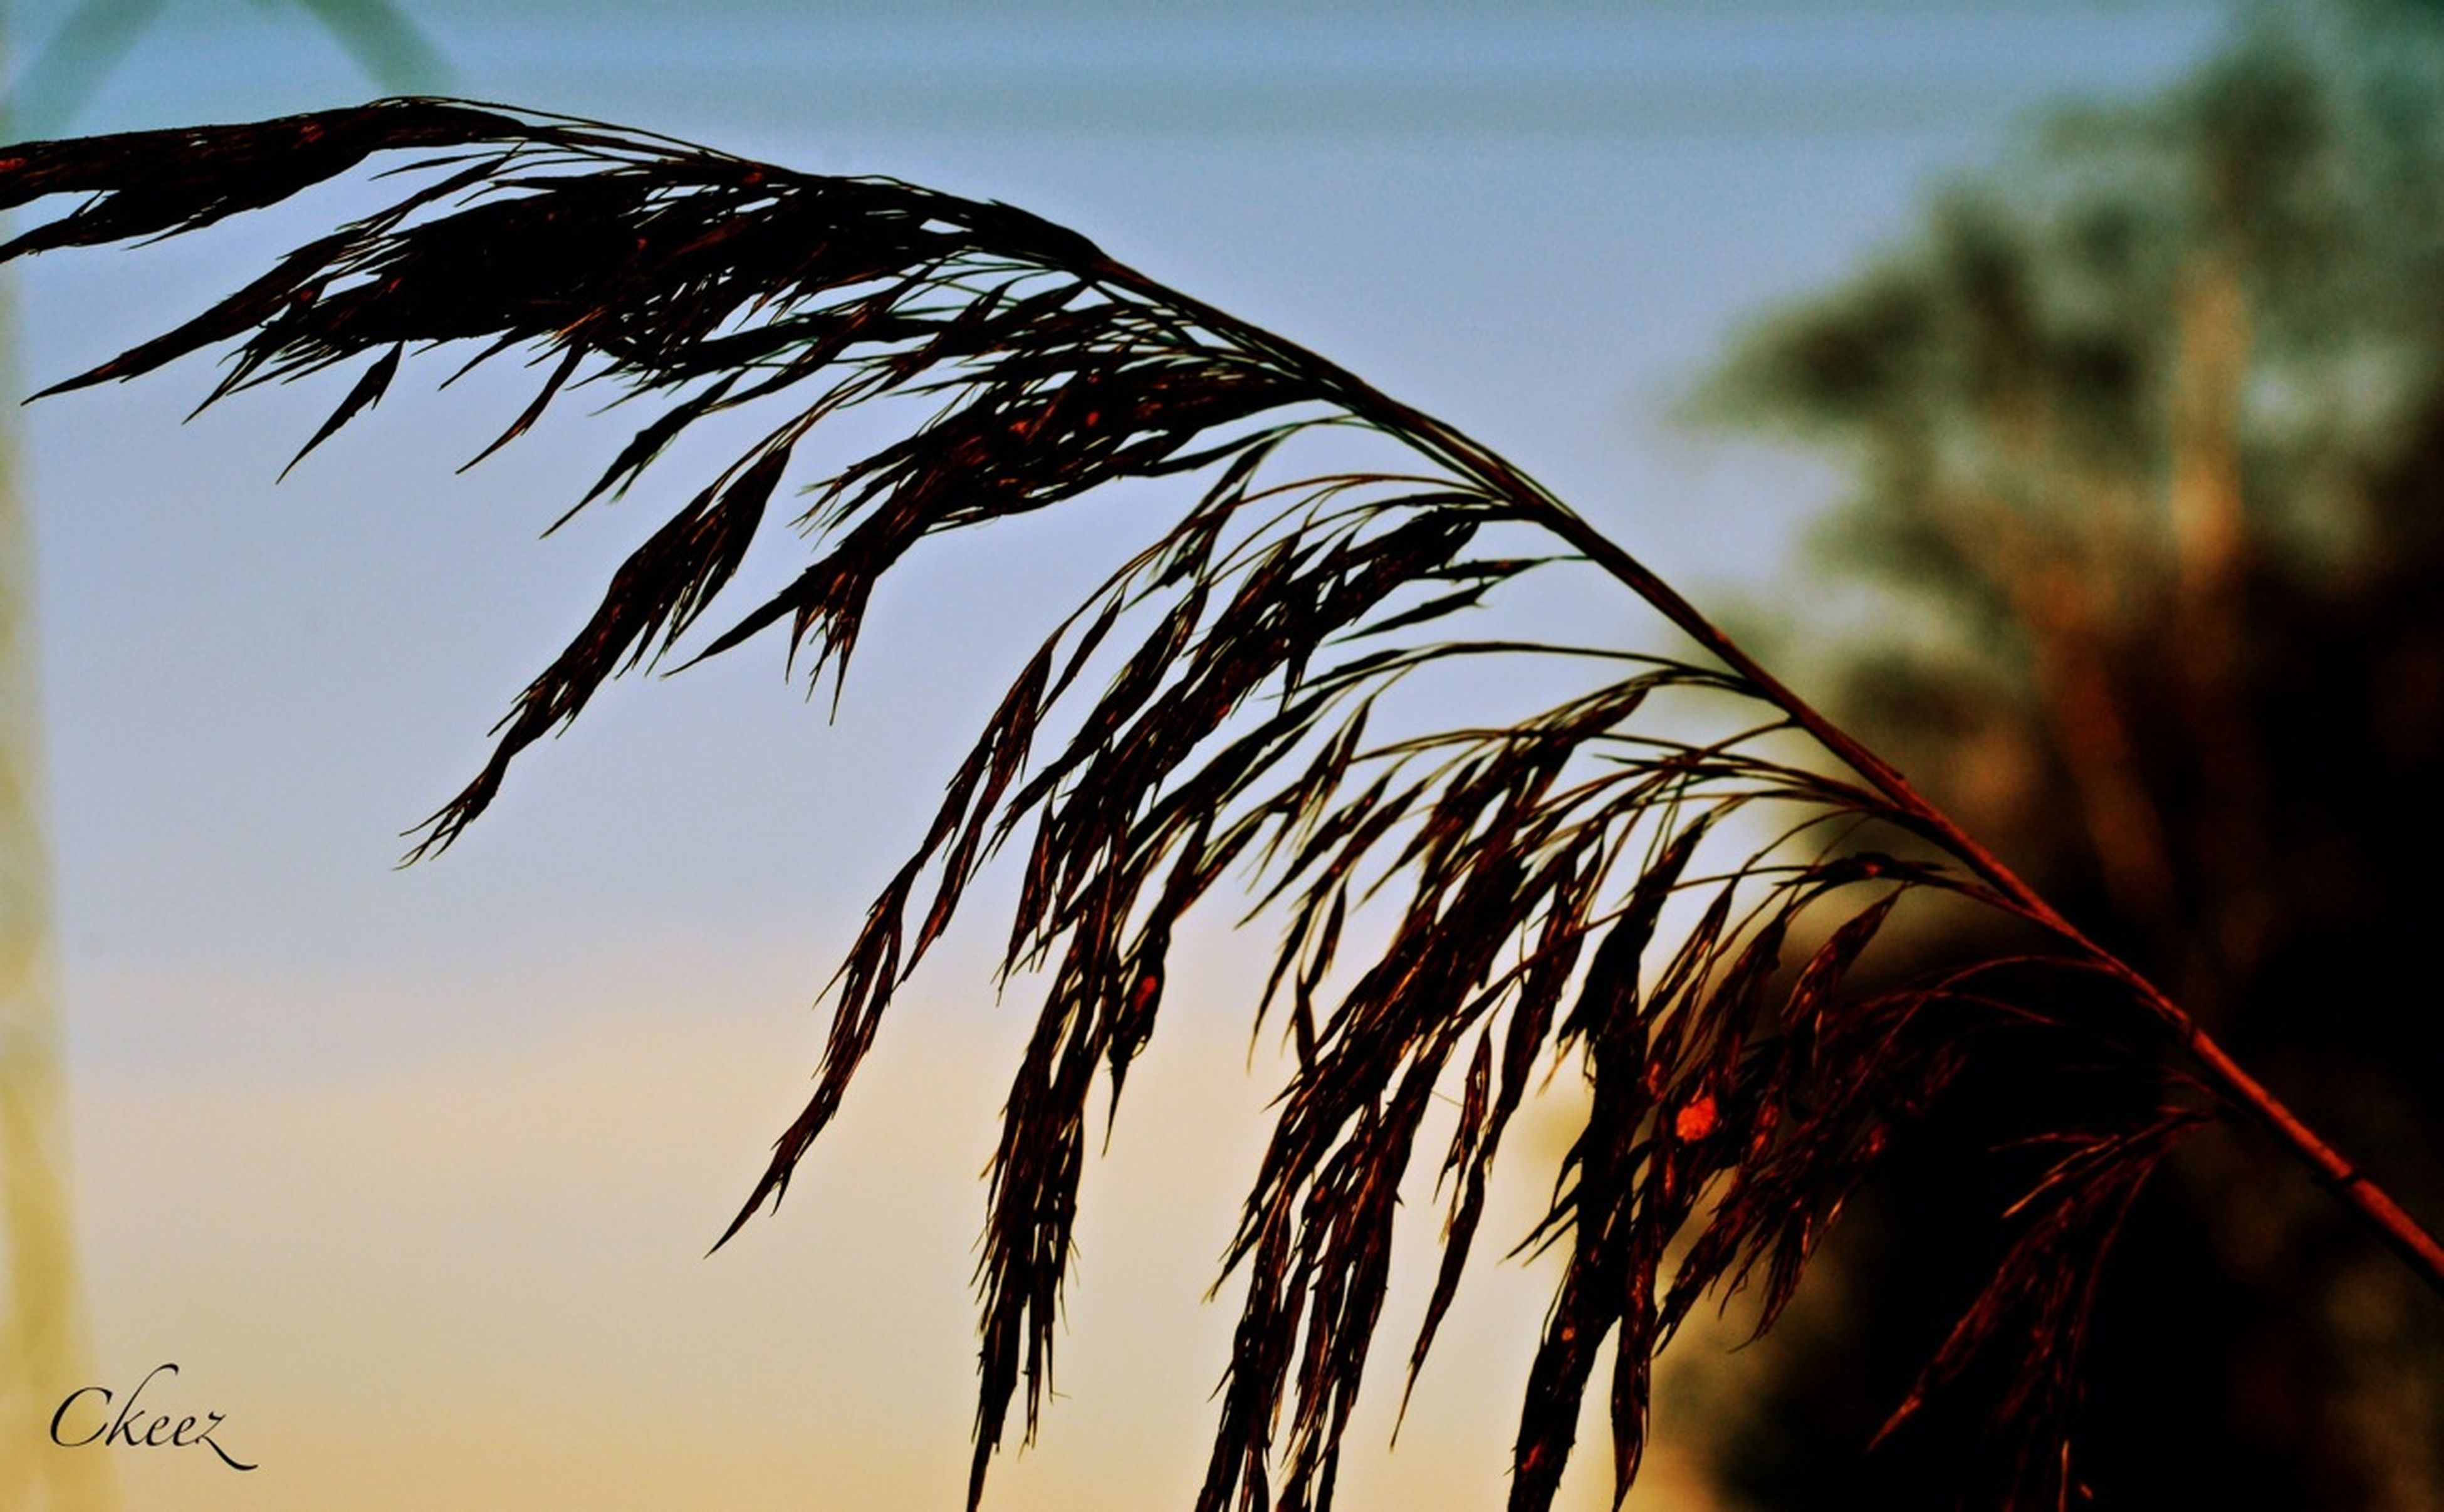 close-up, focus on foreground, growth, nature, plant, cereal plant, stem, dry, tranquility, straw, beauty in nature, growing, stalk, outdoors, crop, day, spiked, wheat, no people, sky